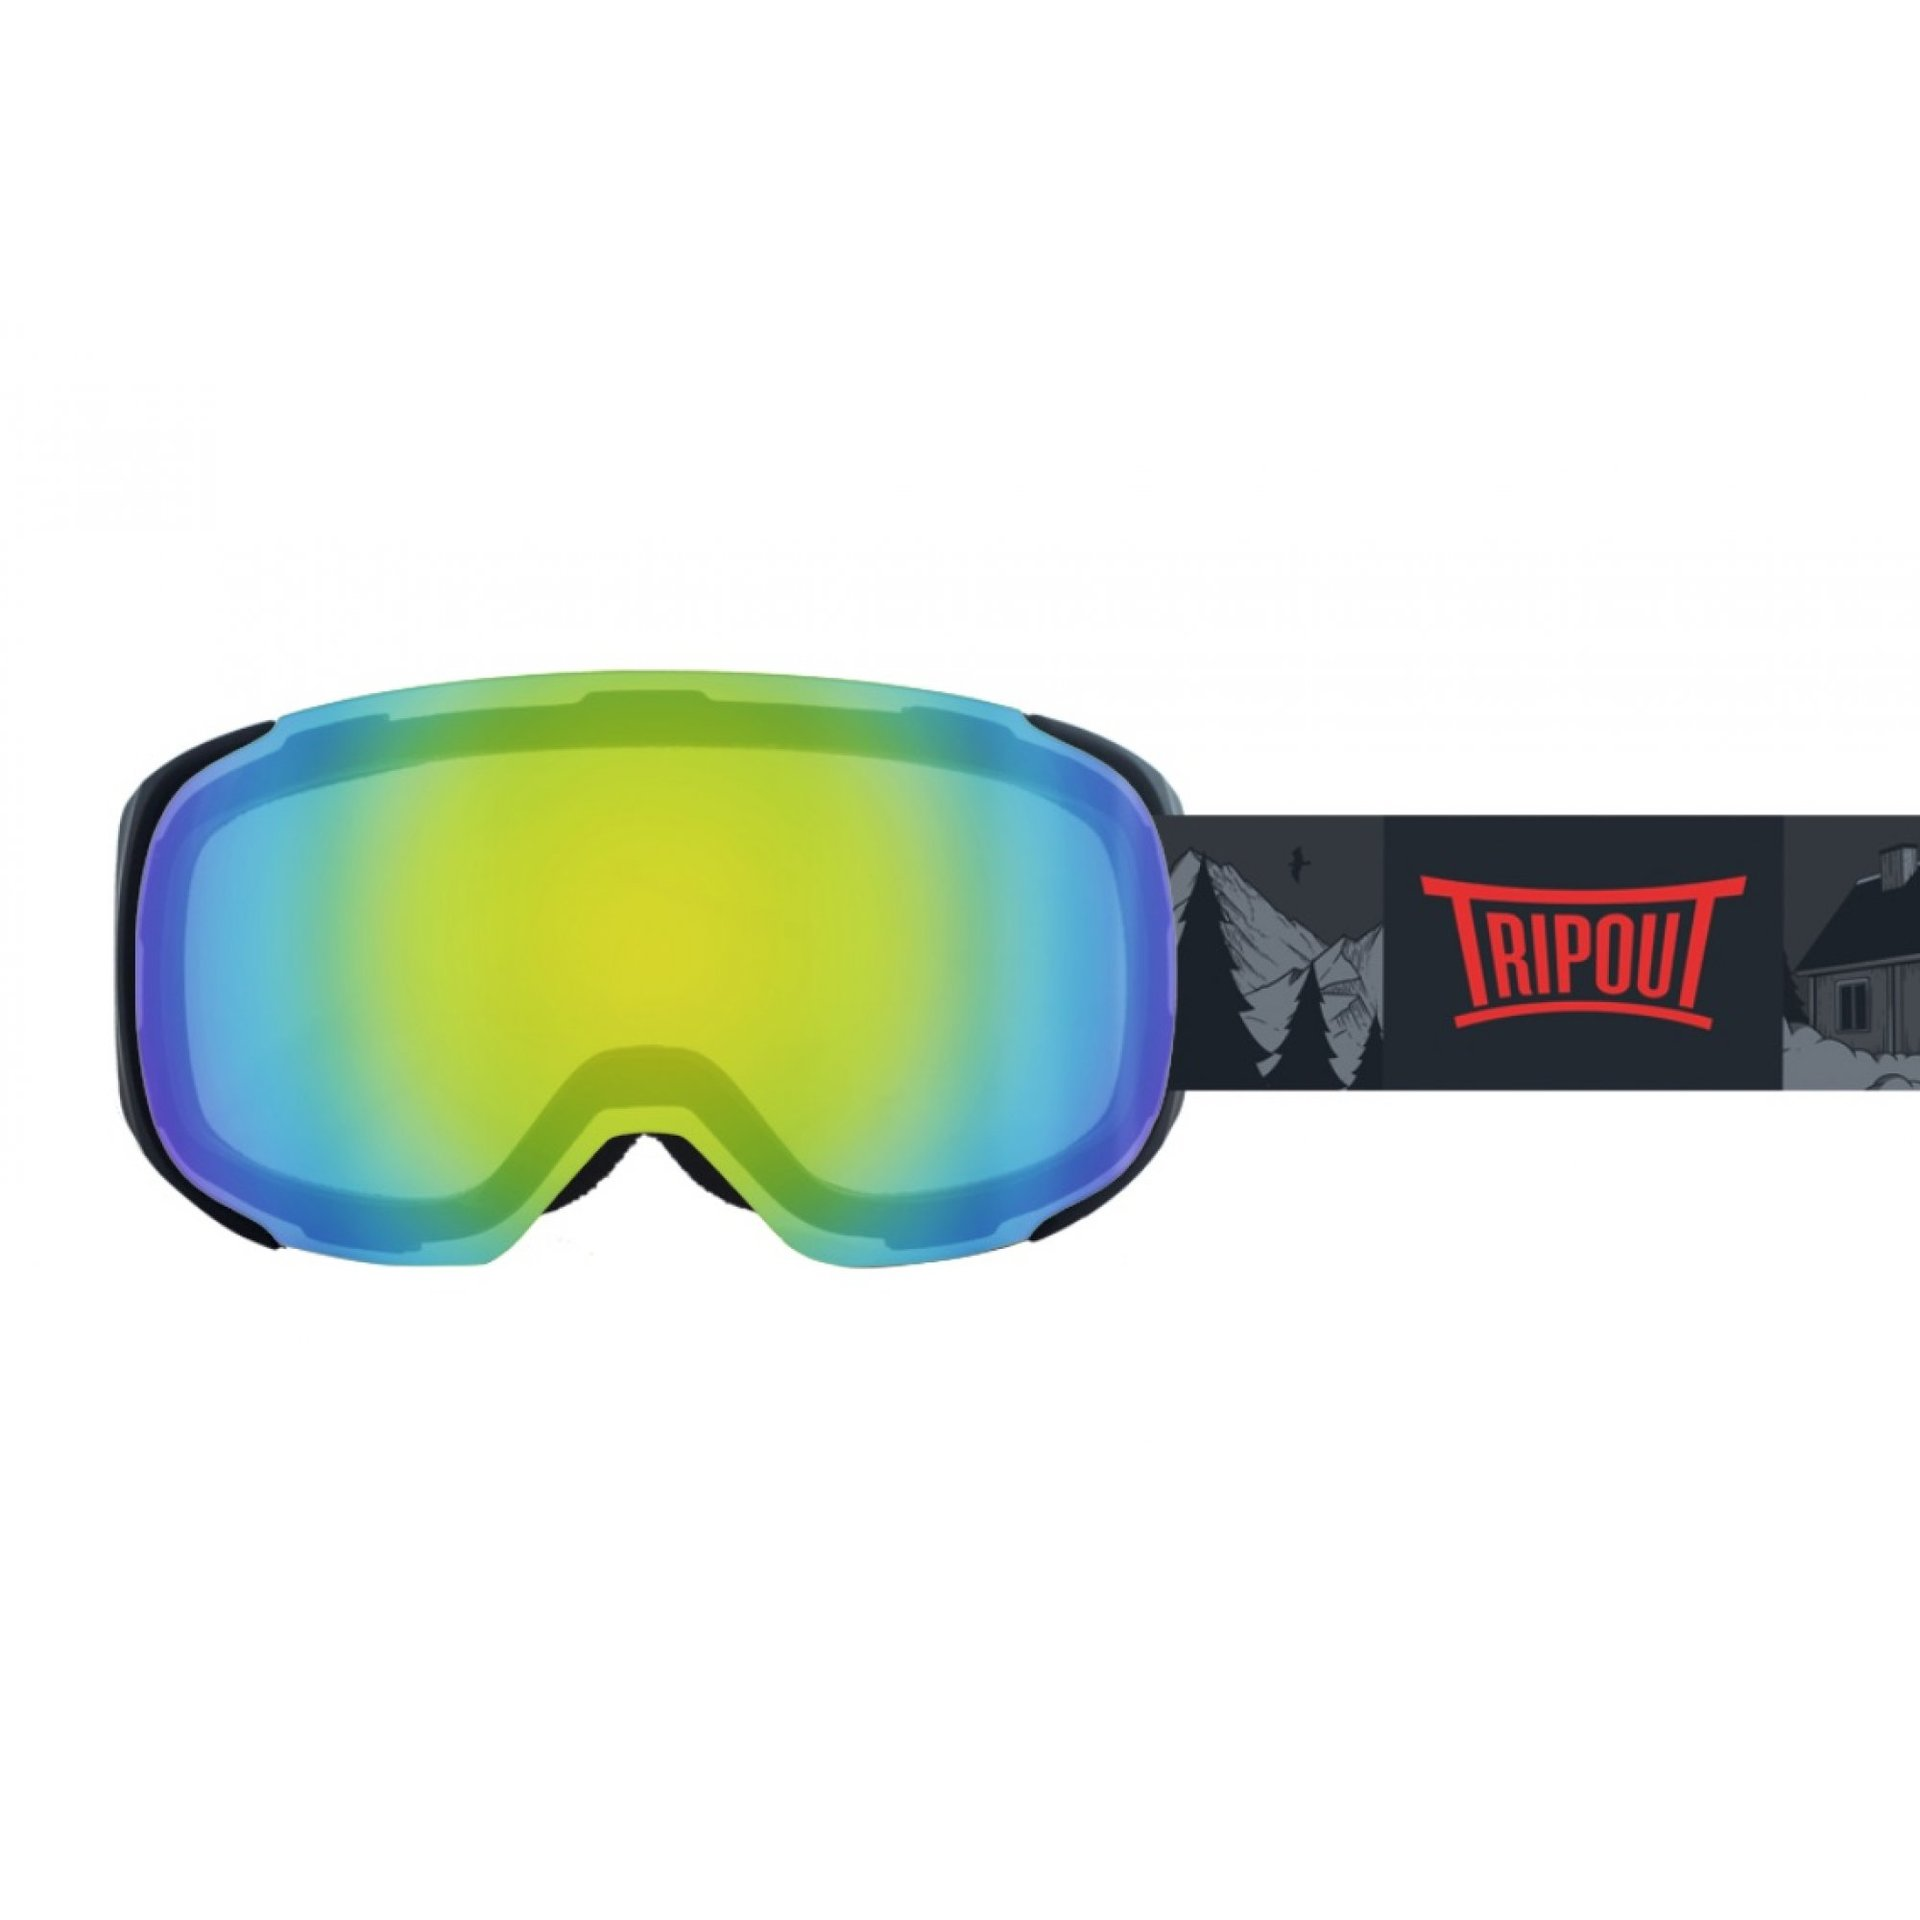 GOGLE TRIPOUT STEEZ GRIZZLY|BLACK|MINT MIRRORED+FOGGY 1